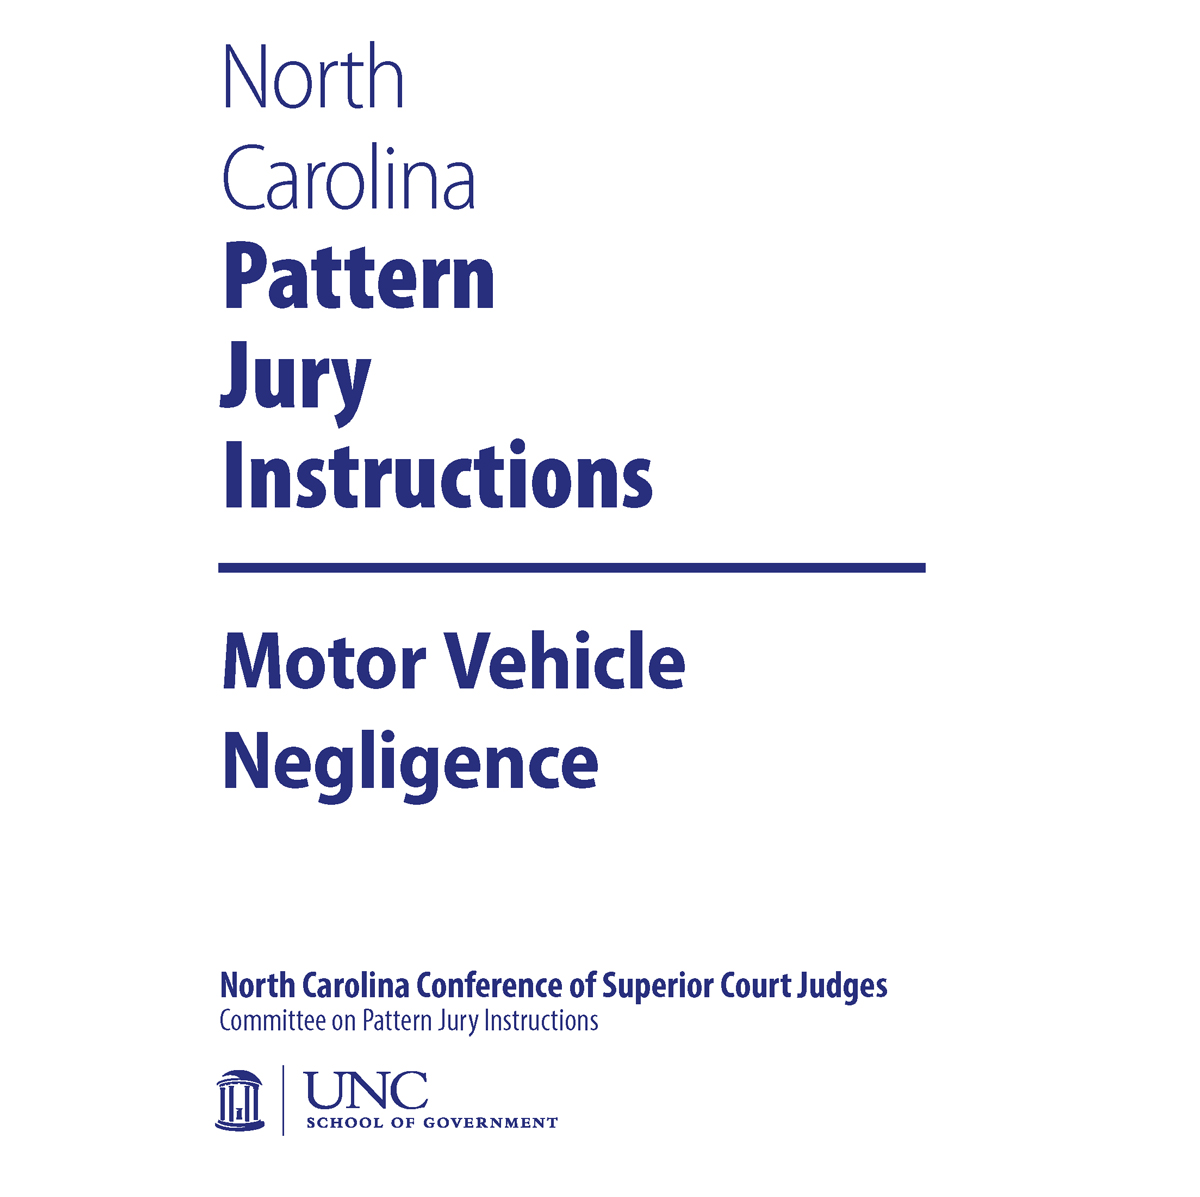 NC Pattern Jury Instructions for Civil Cases: Complete Set | UNC ...